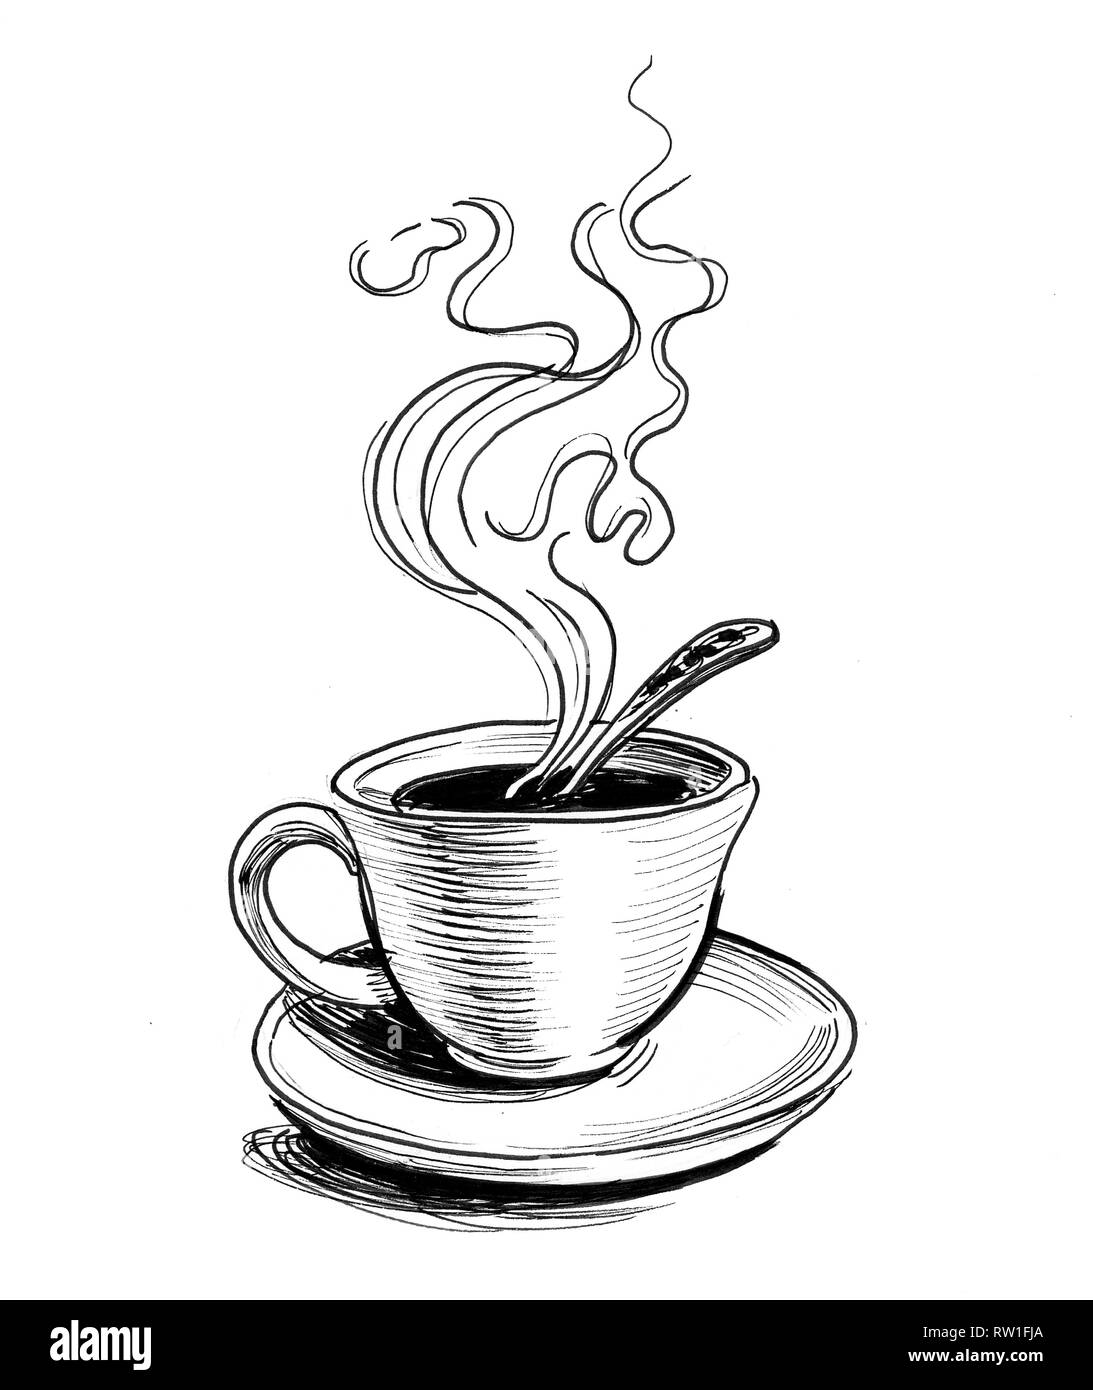 Hot Cup Of Tea On A Saucer Ink Black And White Drawing Stock Photo Alamy